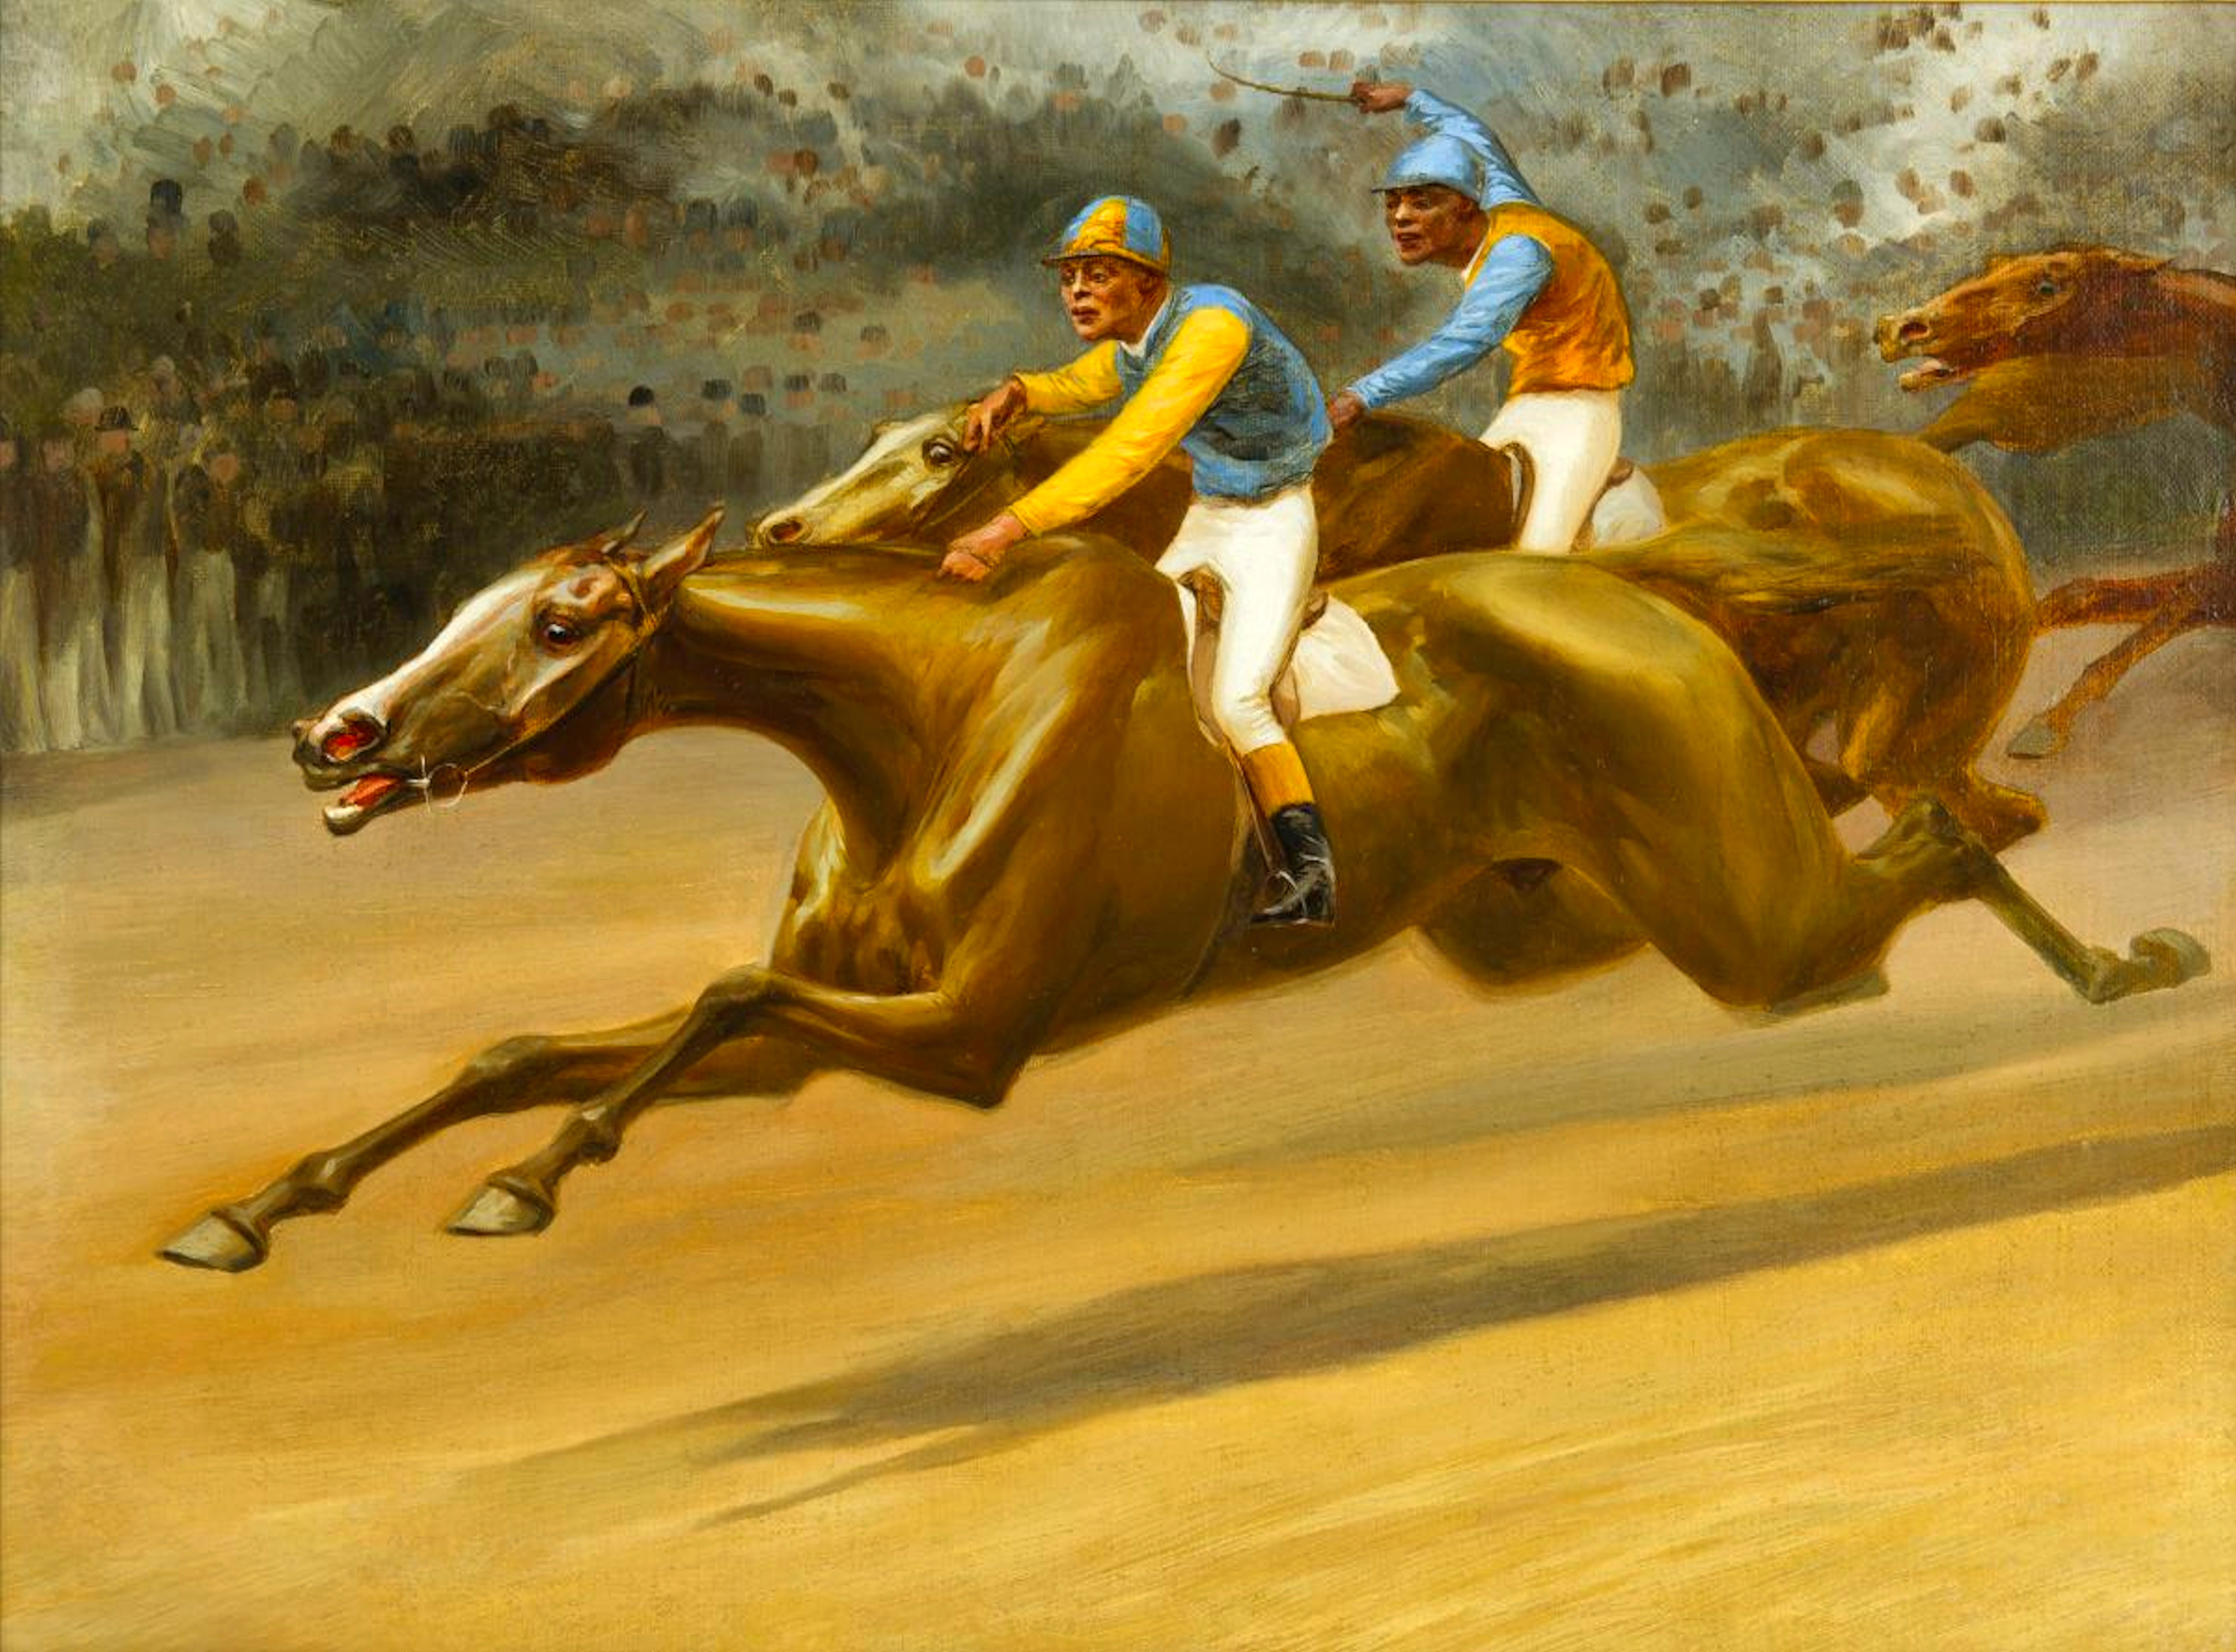 """Proctor Knott (The First Futurity, 1888, Jerome Park, Sheepshead Bay, a Close Finish), by Louis Maurer: Proctor Knott with Shelby """"Pike"""" Barnes in front winning the race (National Sporting Library and Museum)"""